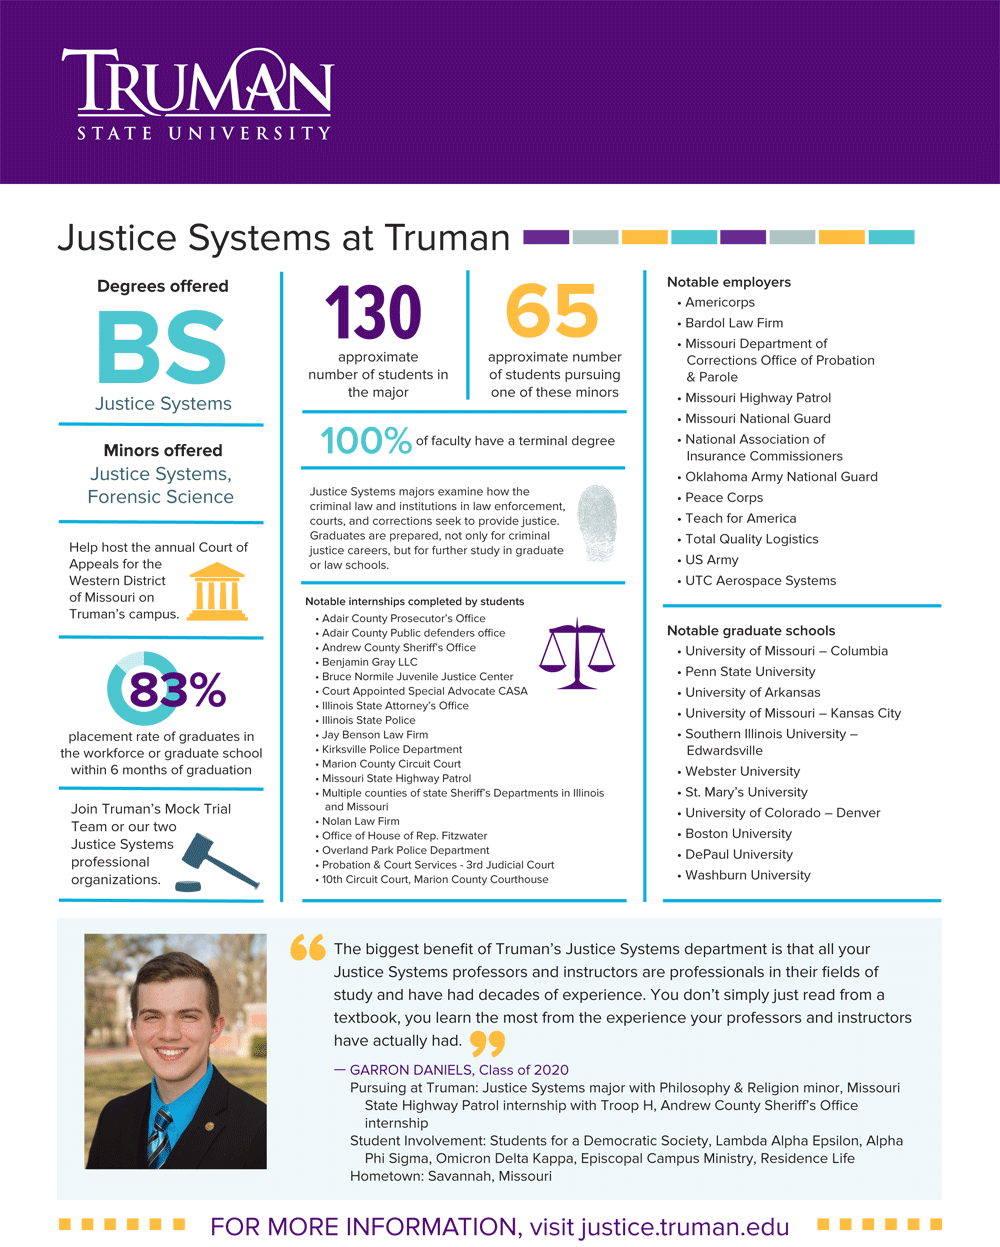 Justice Systems Quick Facts